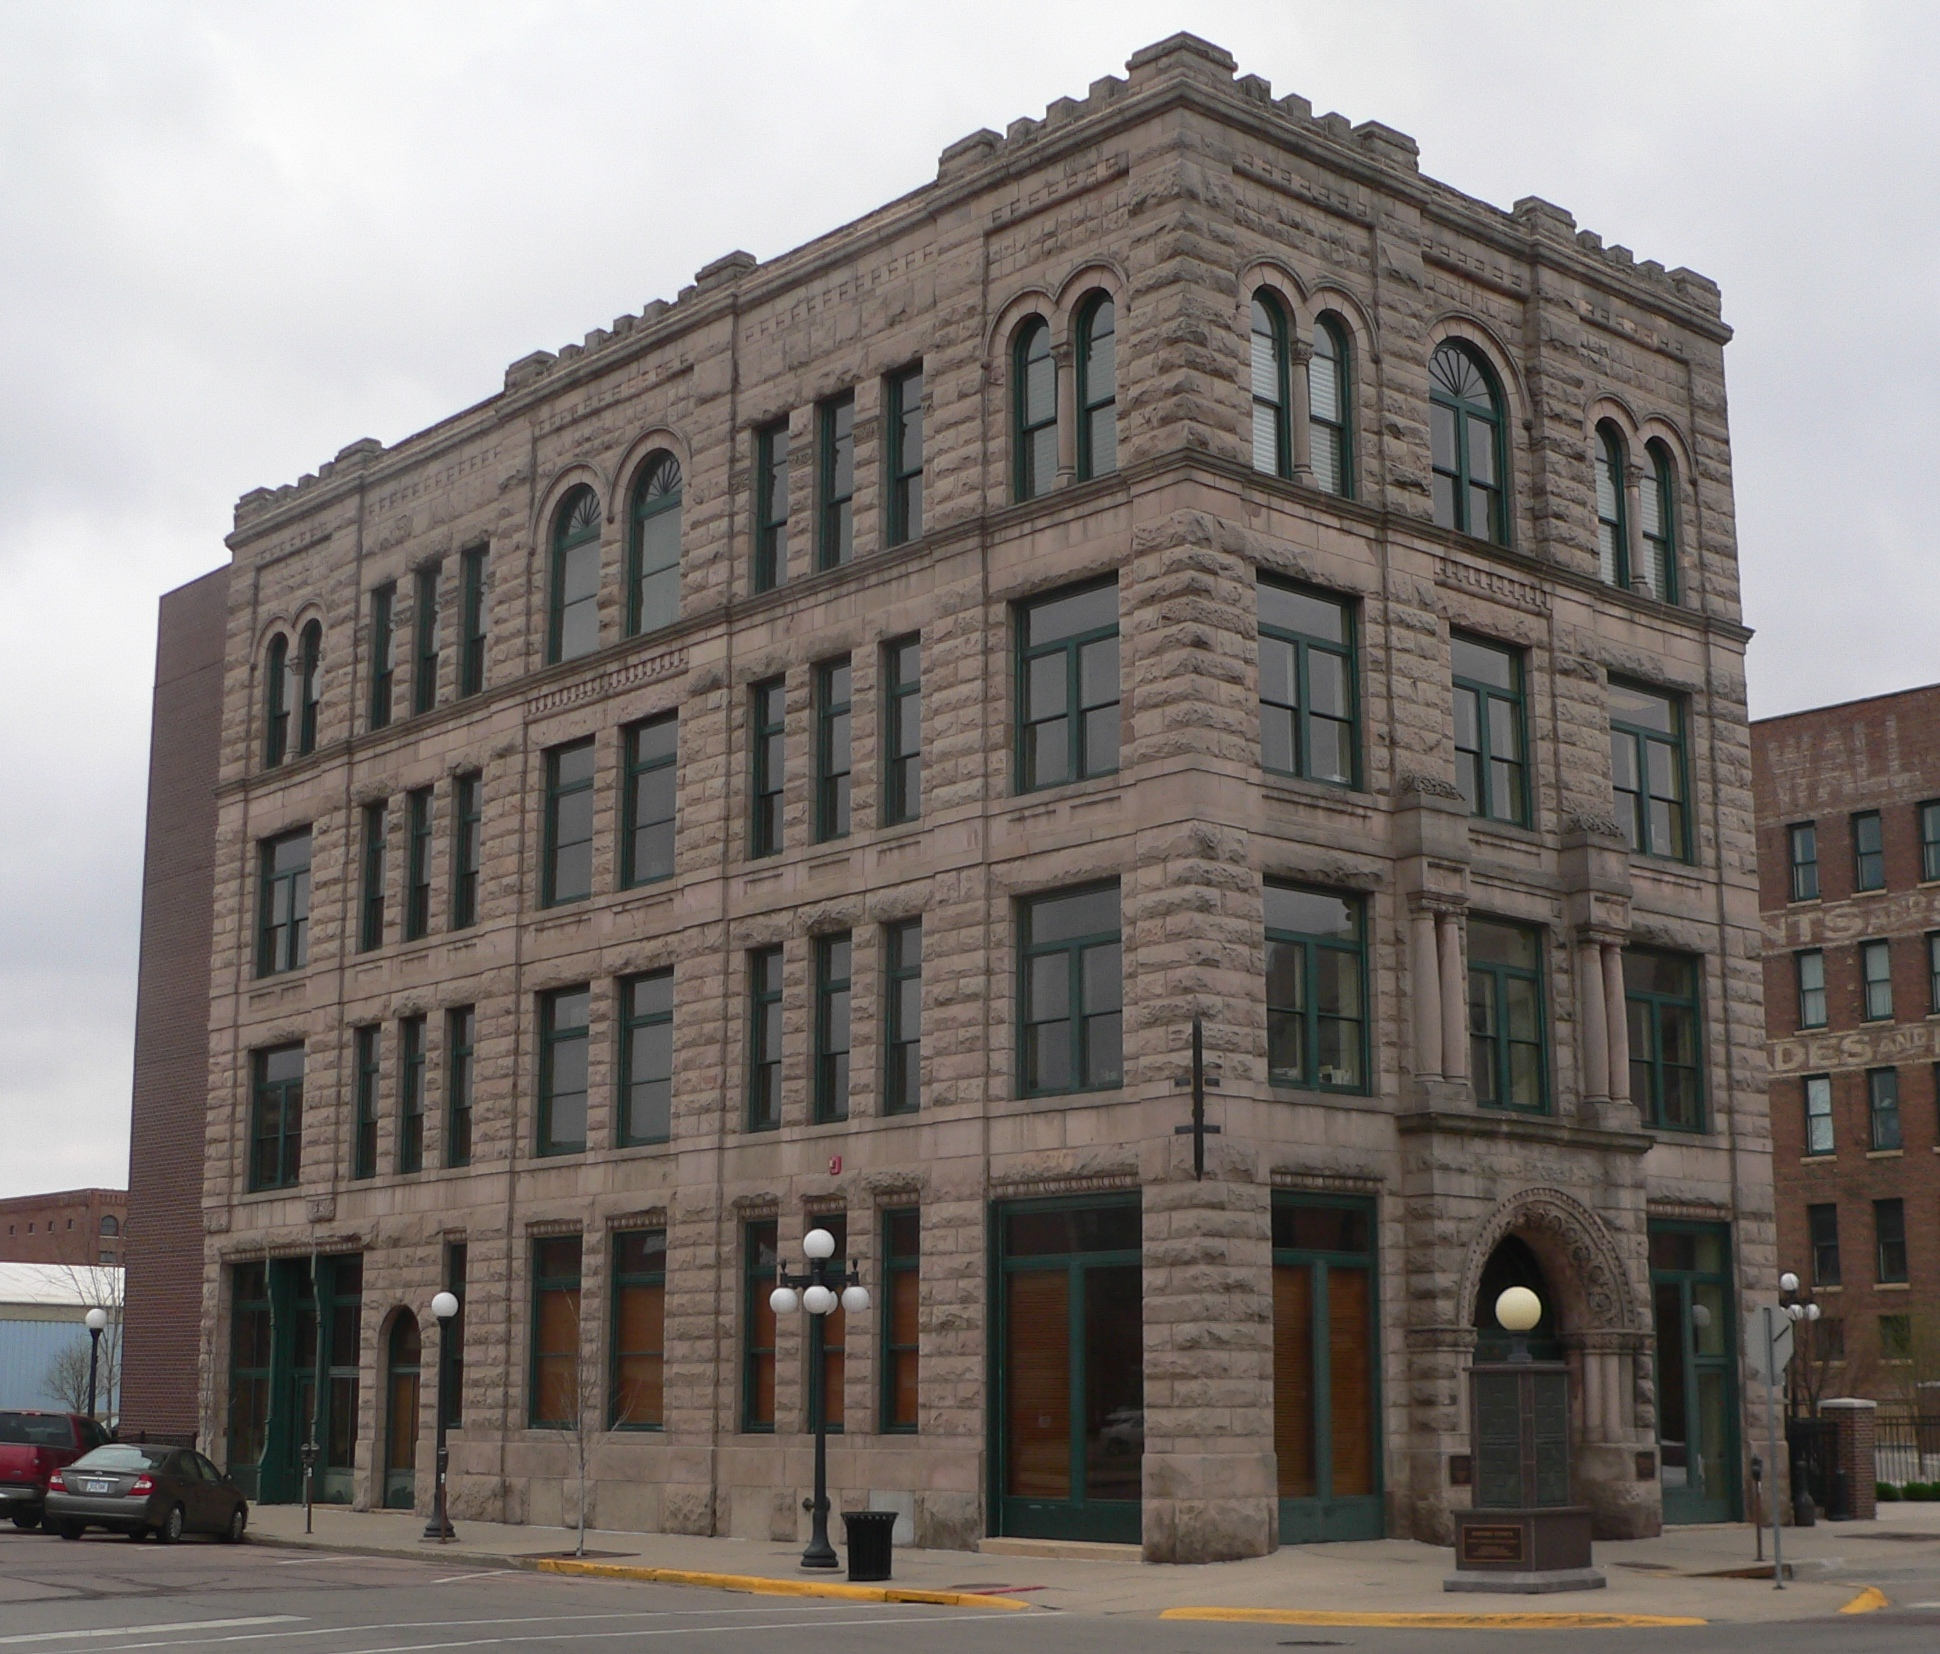 2012 Photo of The Evans Block building in Sioux City, Iowa.